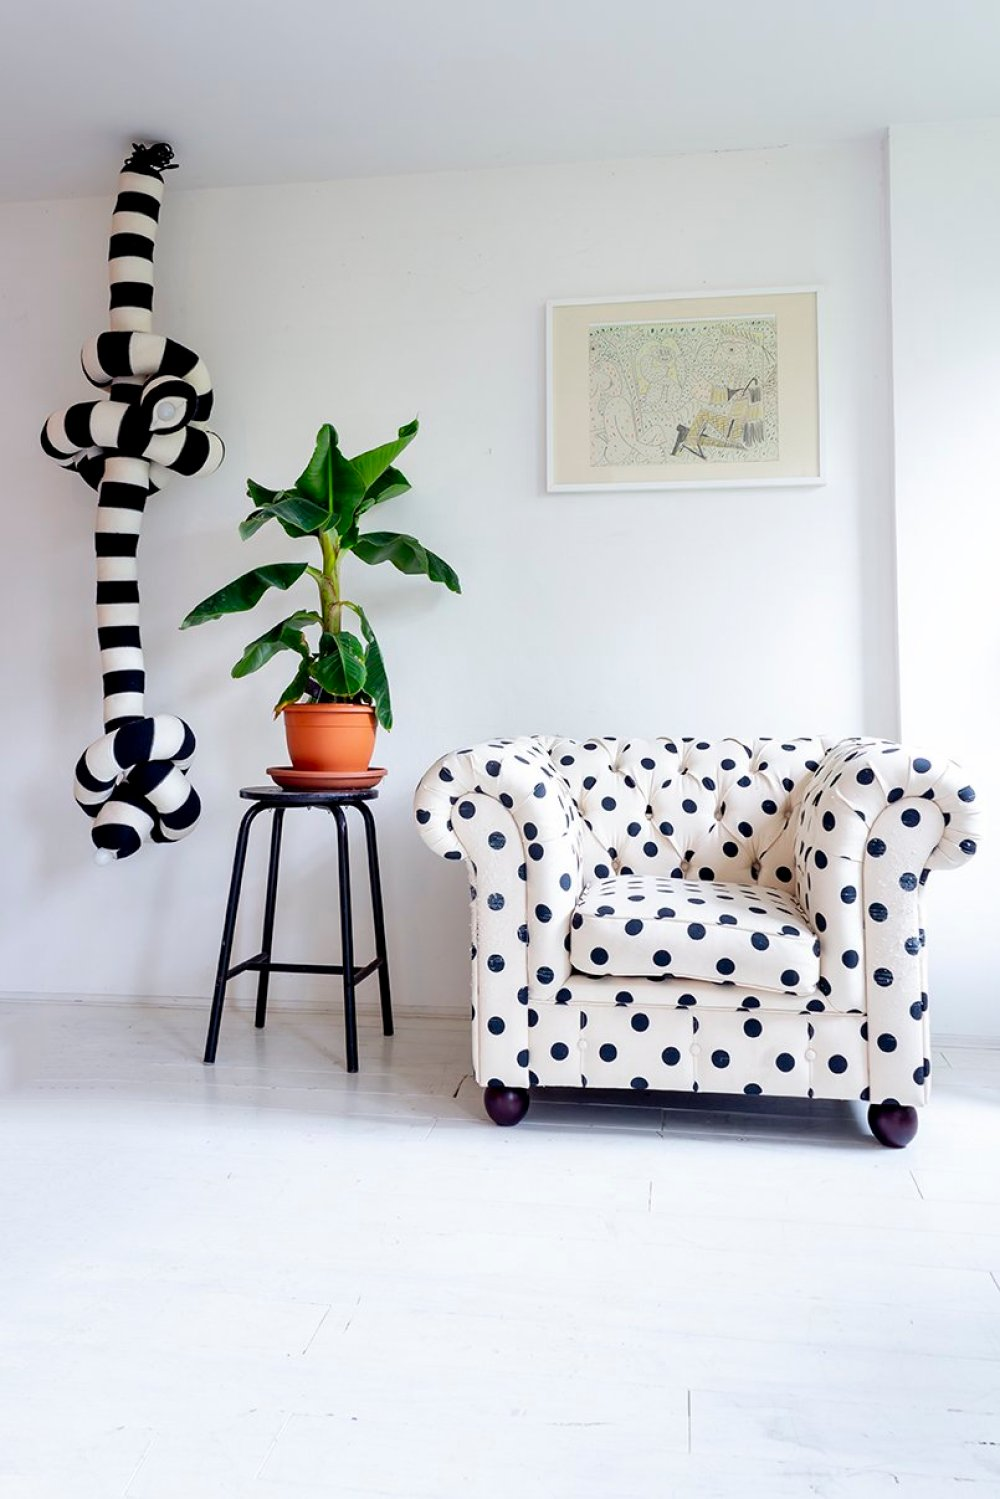 Polka dot chesterfield at the home of Annebet Philips